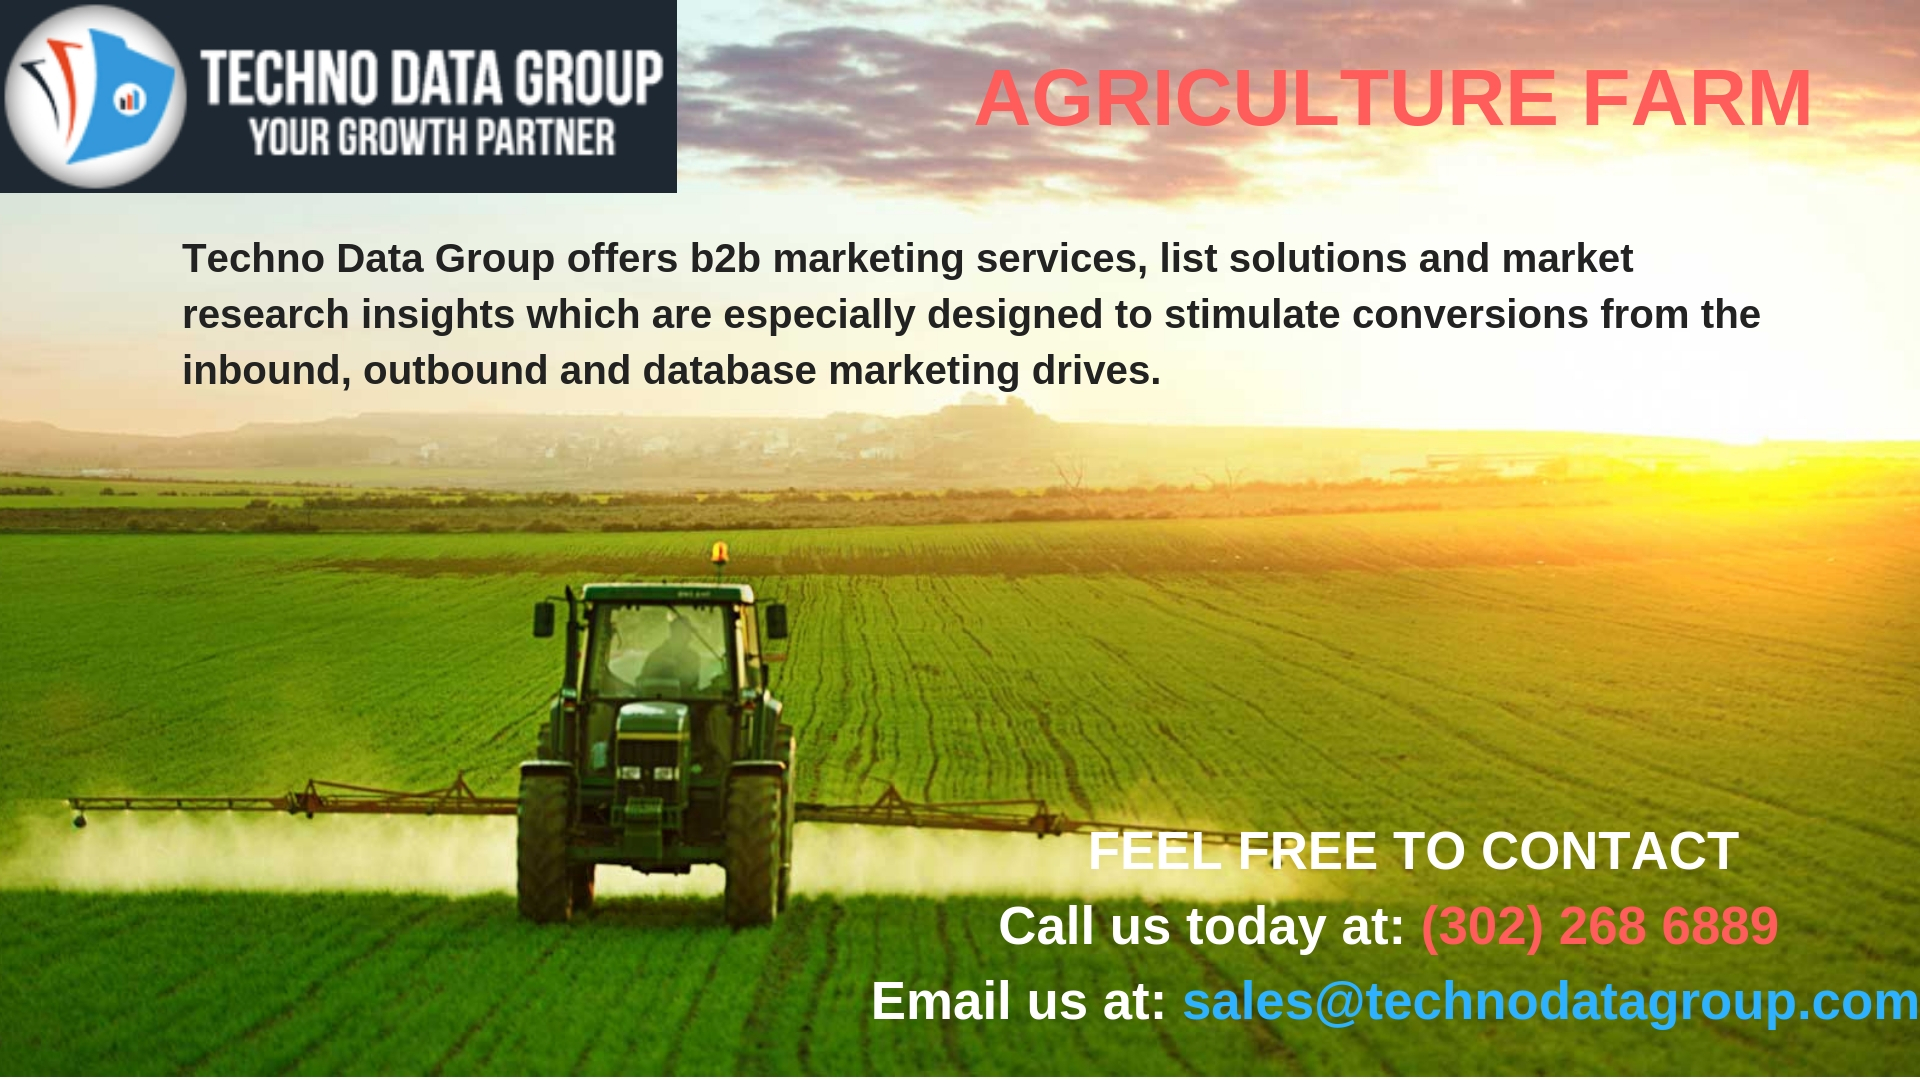 Agriculture Farm Business Email List | Agriculture Farm Business Mailing